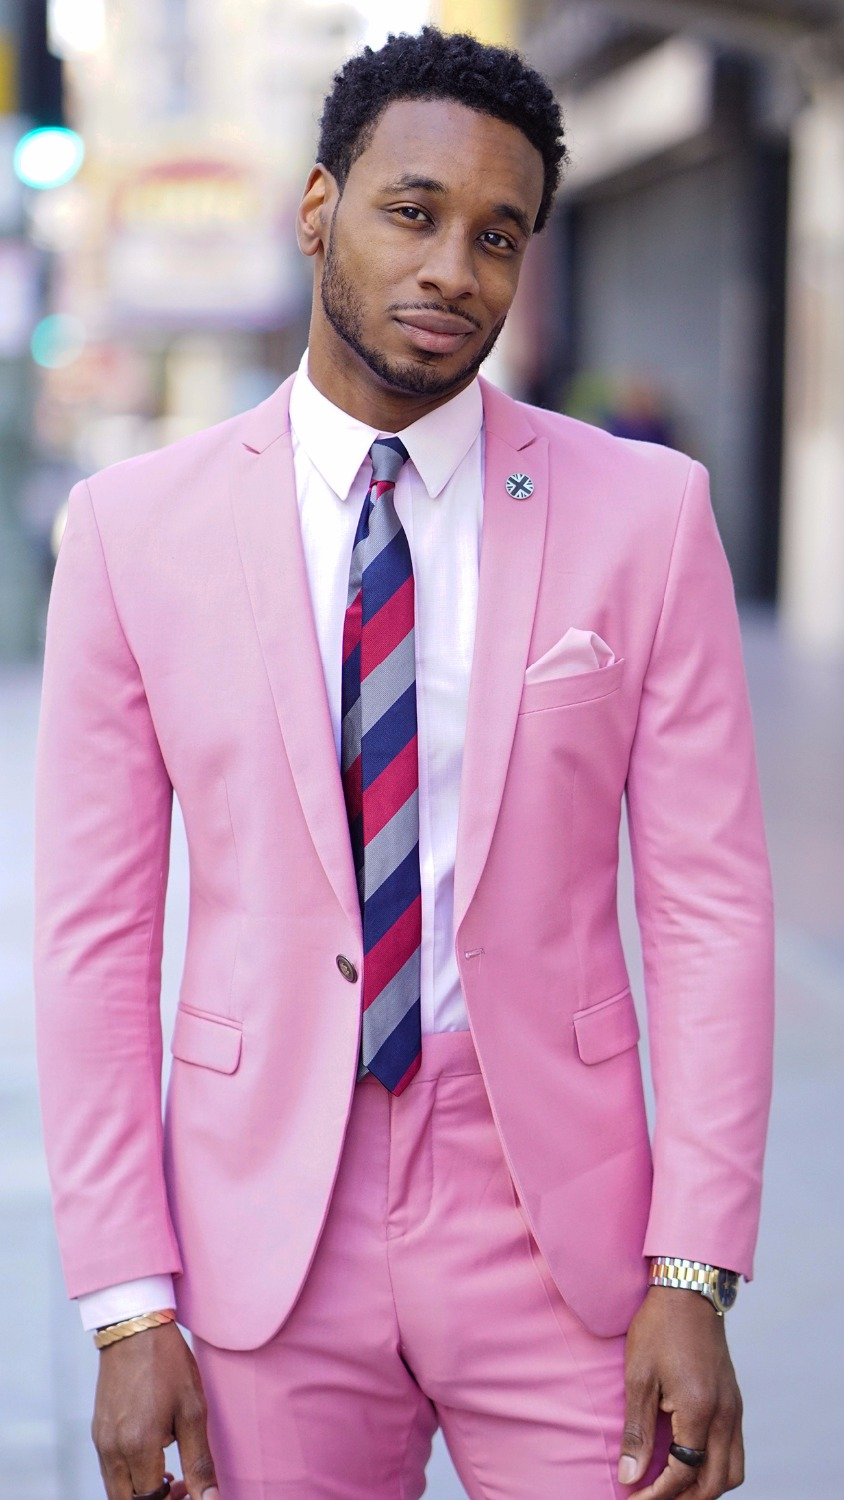 Compare Prices on Hot Pink Suit- Online Shopping/Buy Low Price Hot ...